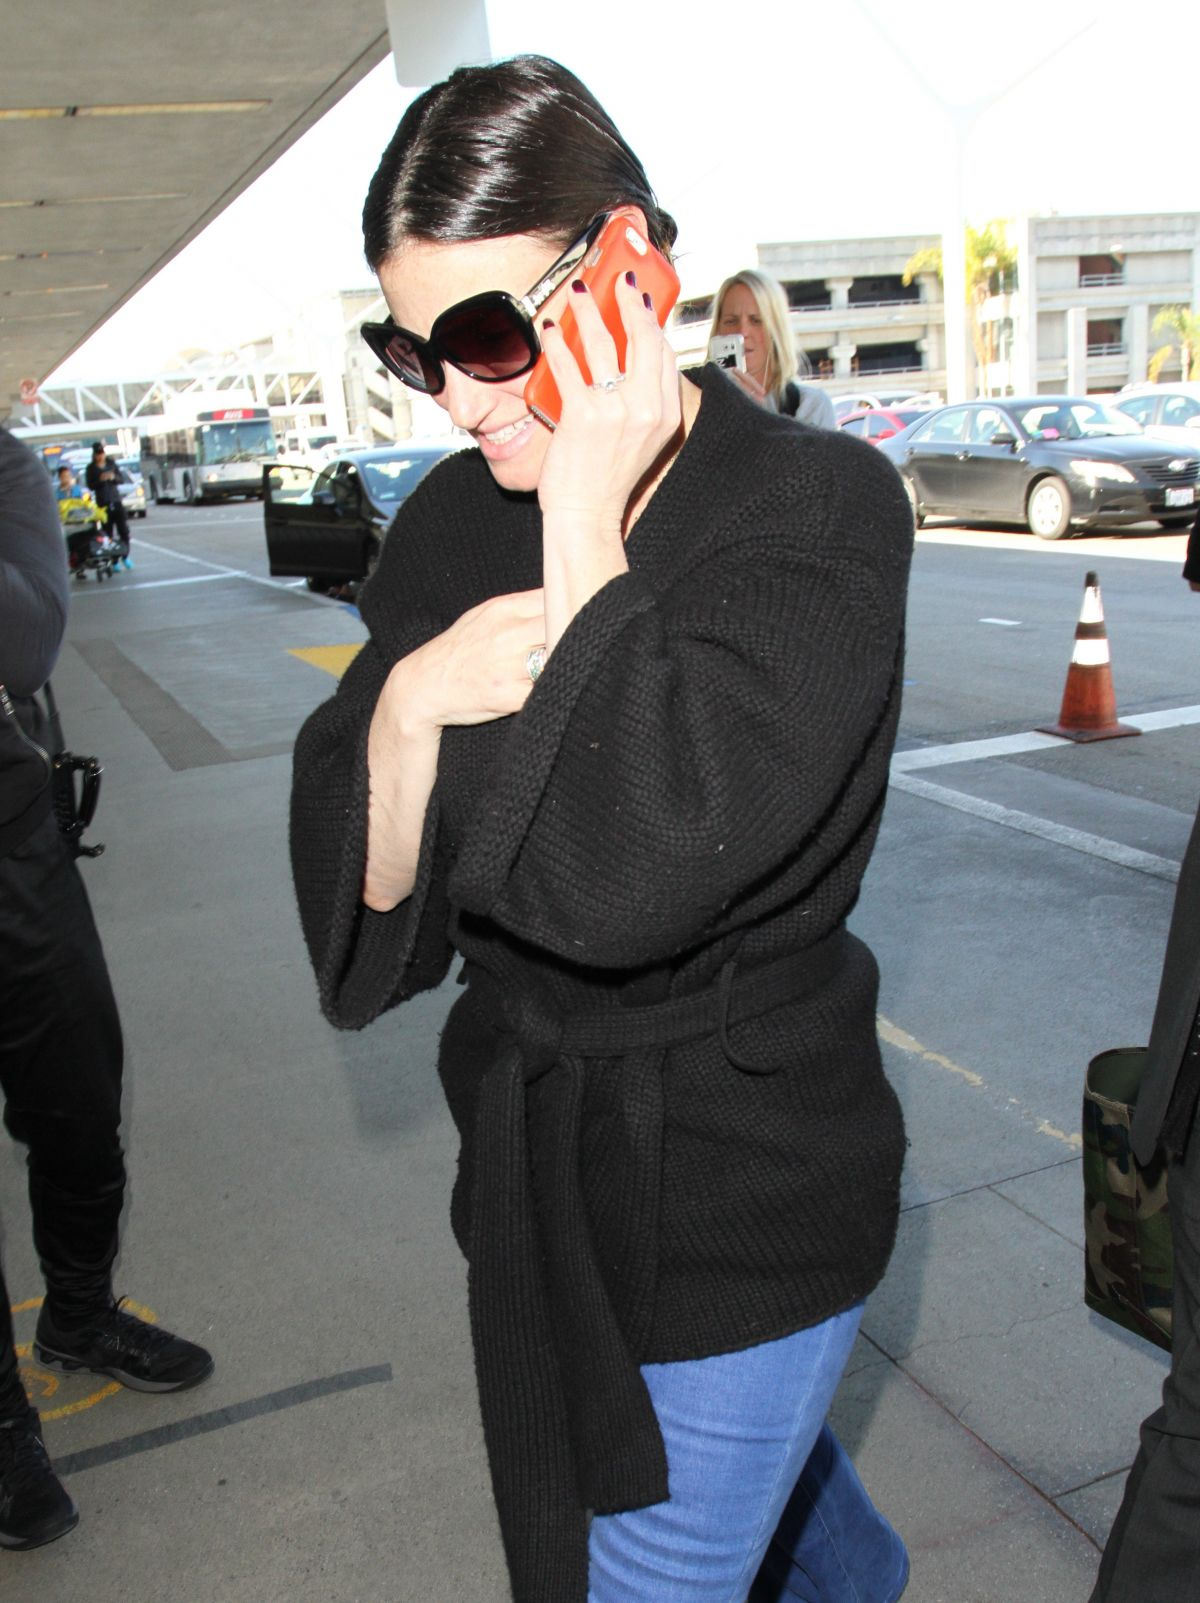 IDINA MENZEL at LAX Airport in Los Angeles 01/17/2017